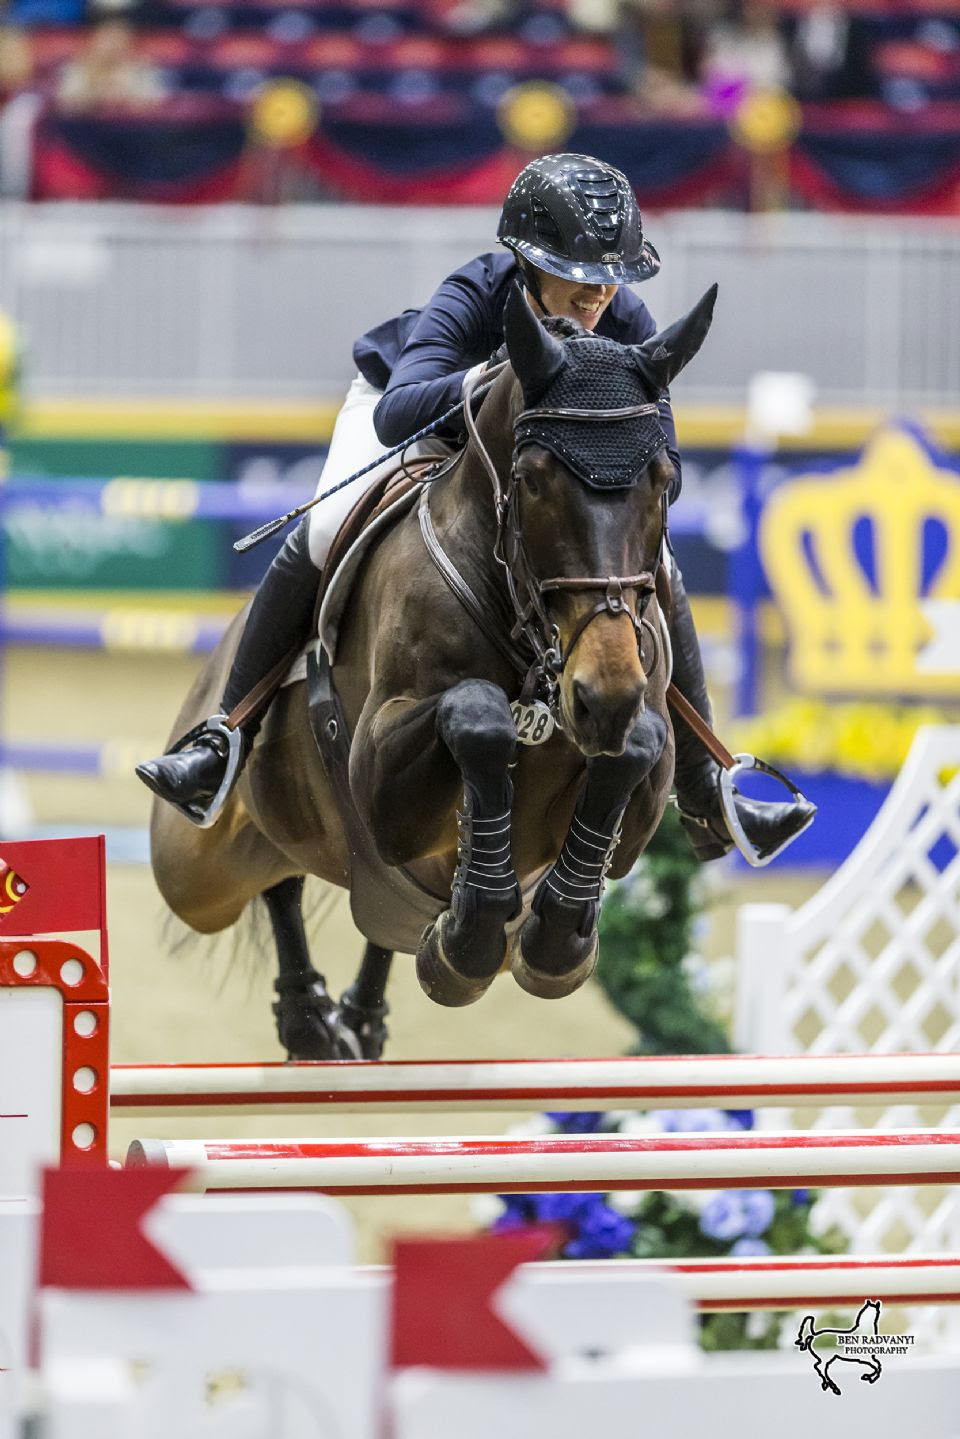 Amy Millar Opens Royal  Horse Show With a Win